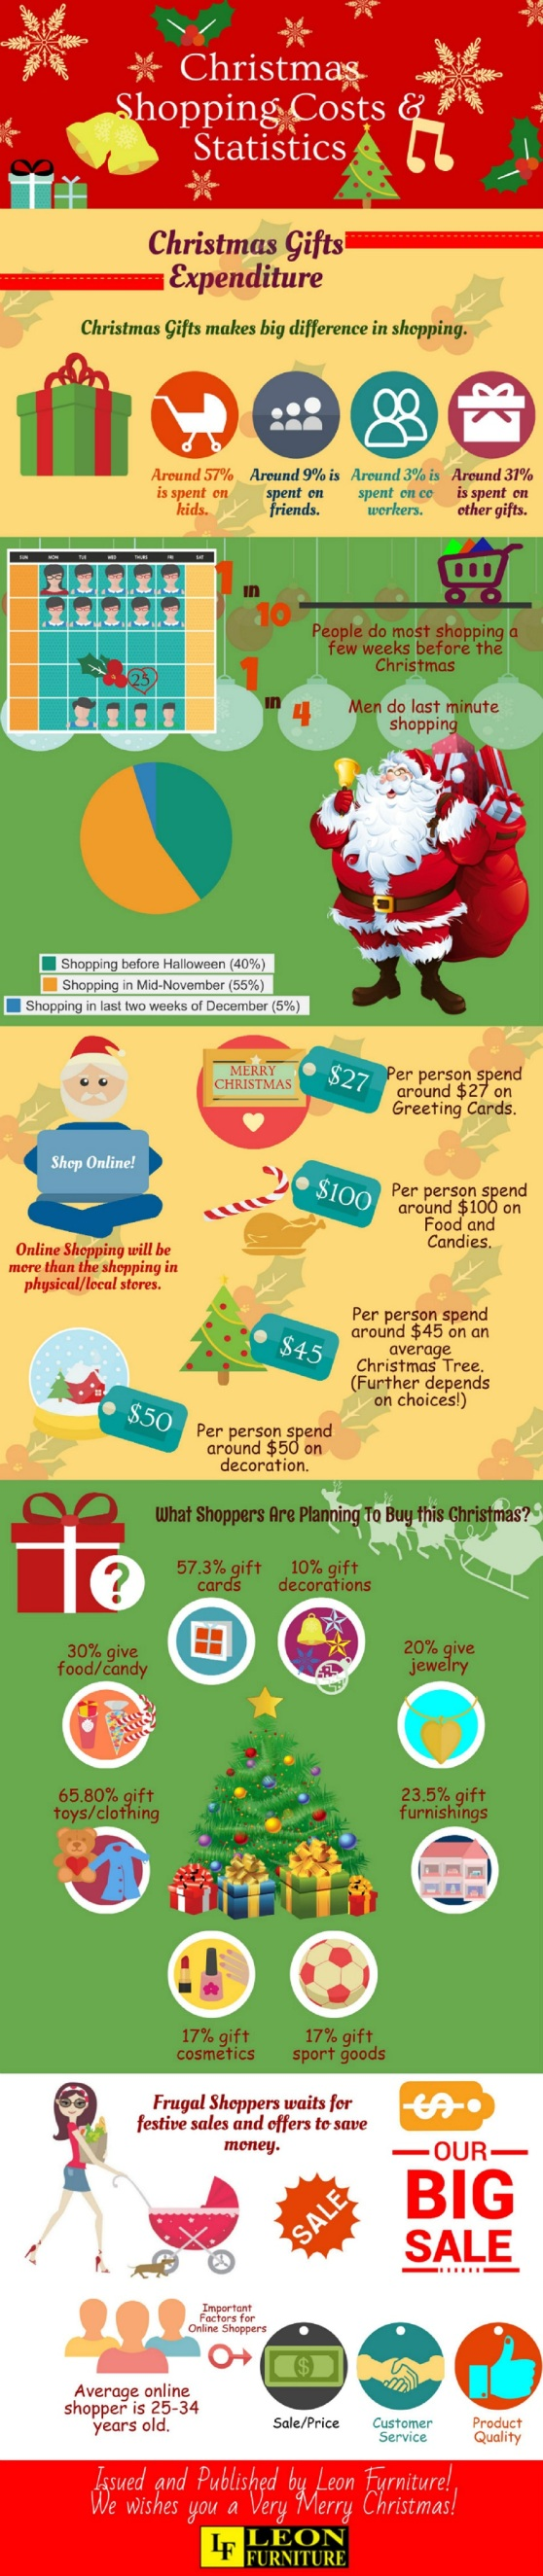 Christmas Shopping Costs and Statistics